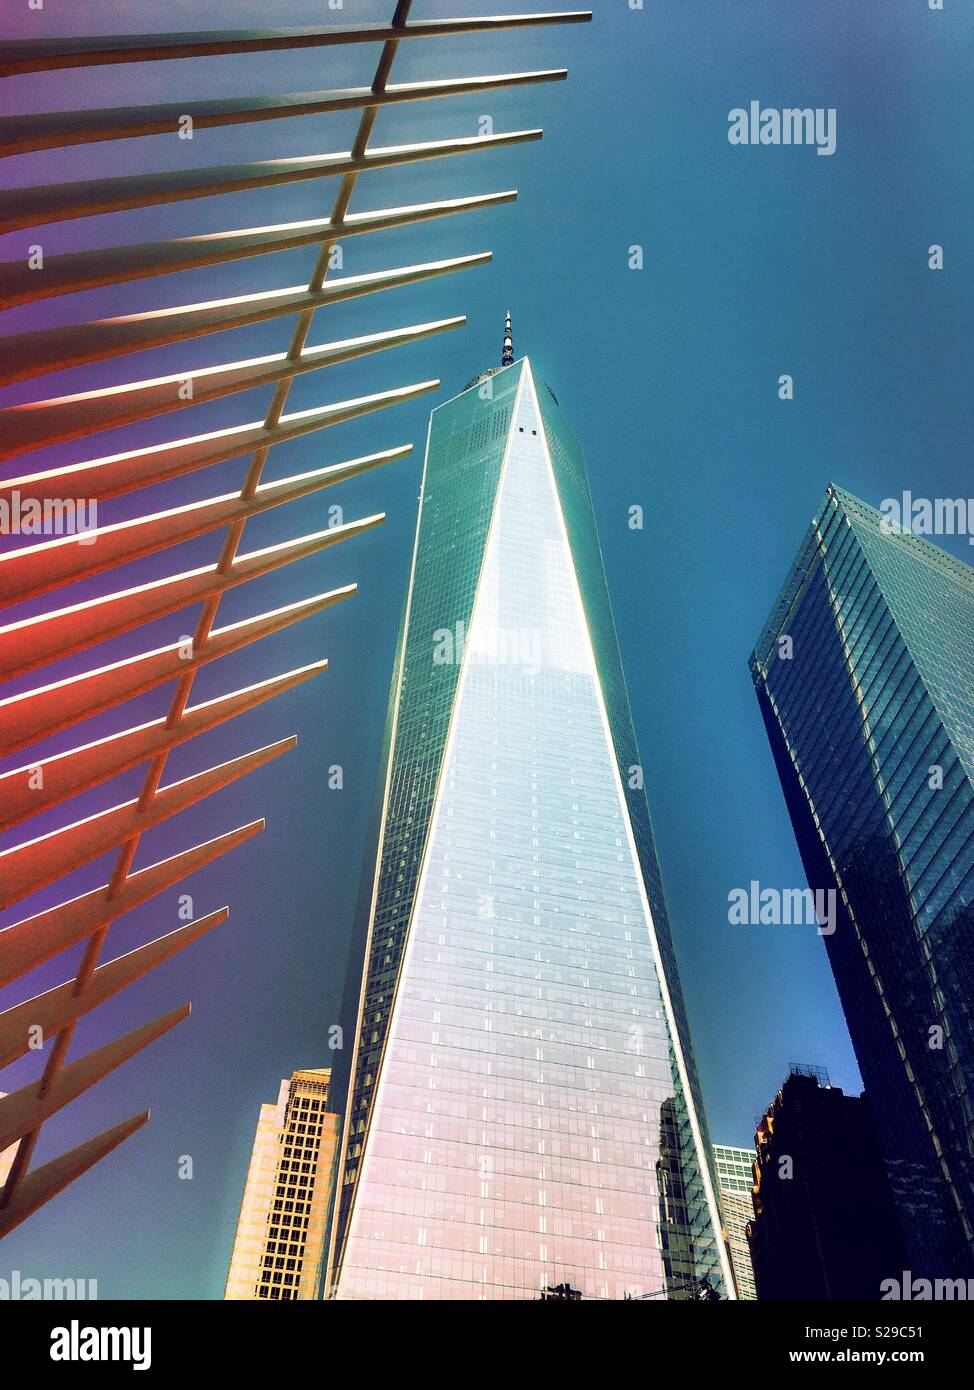 One world trade center and spines of the oculus, NYC, USA - Stock Image